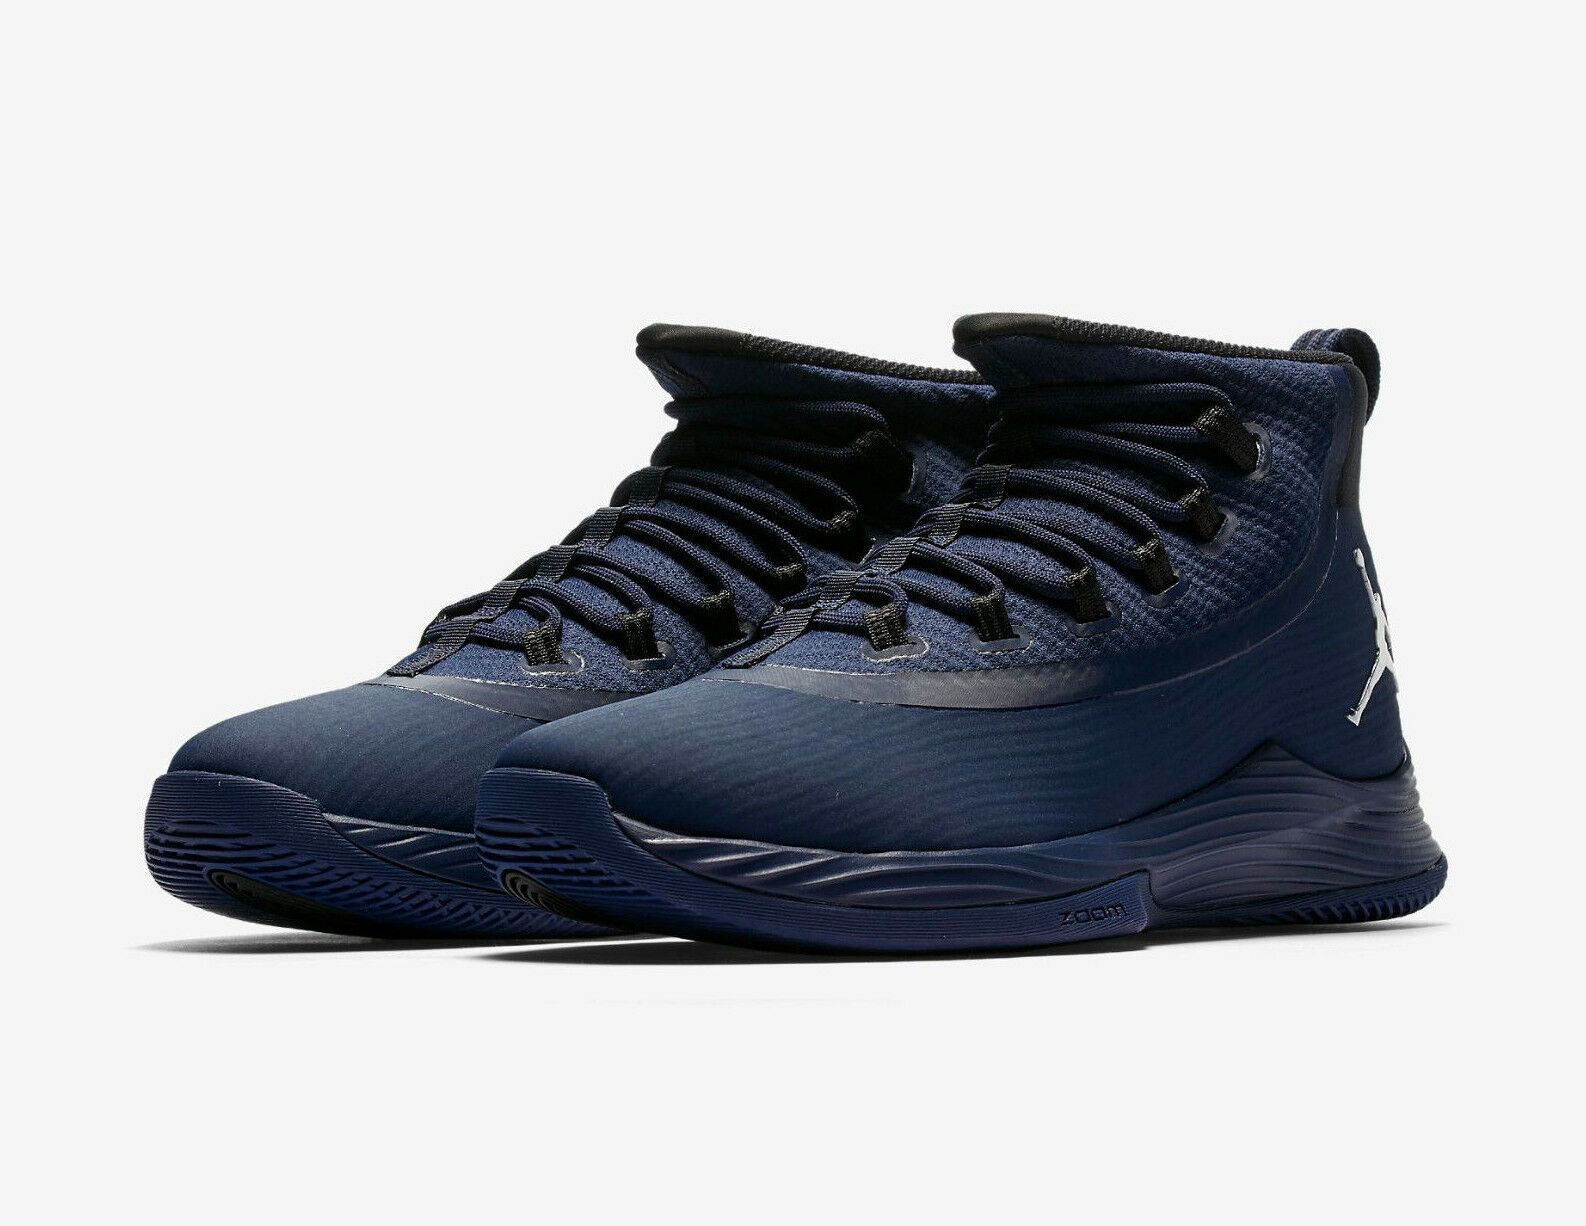 45a0e57e3a6ea Nike Men's Jordan Ultra Fly 2 Basketball Shoes SNEAKERS Midnight ...